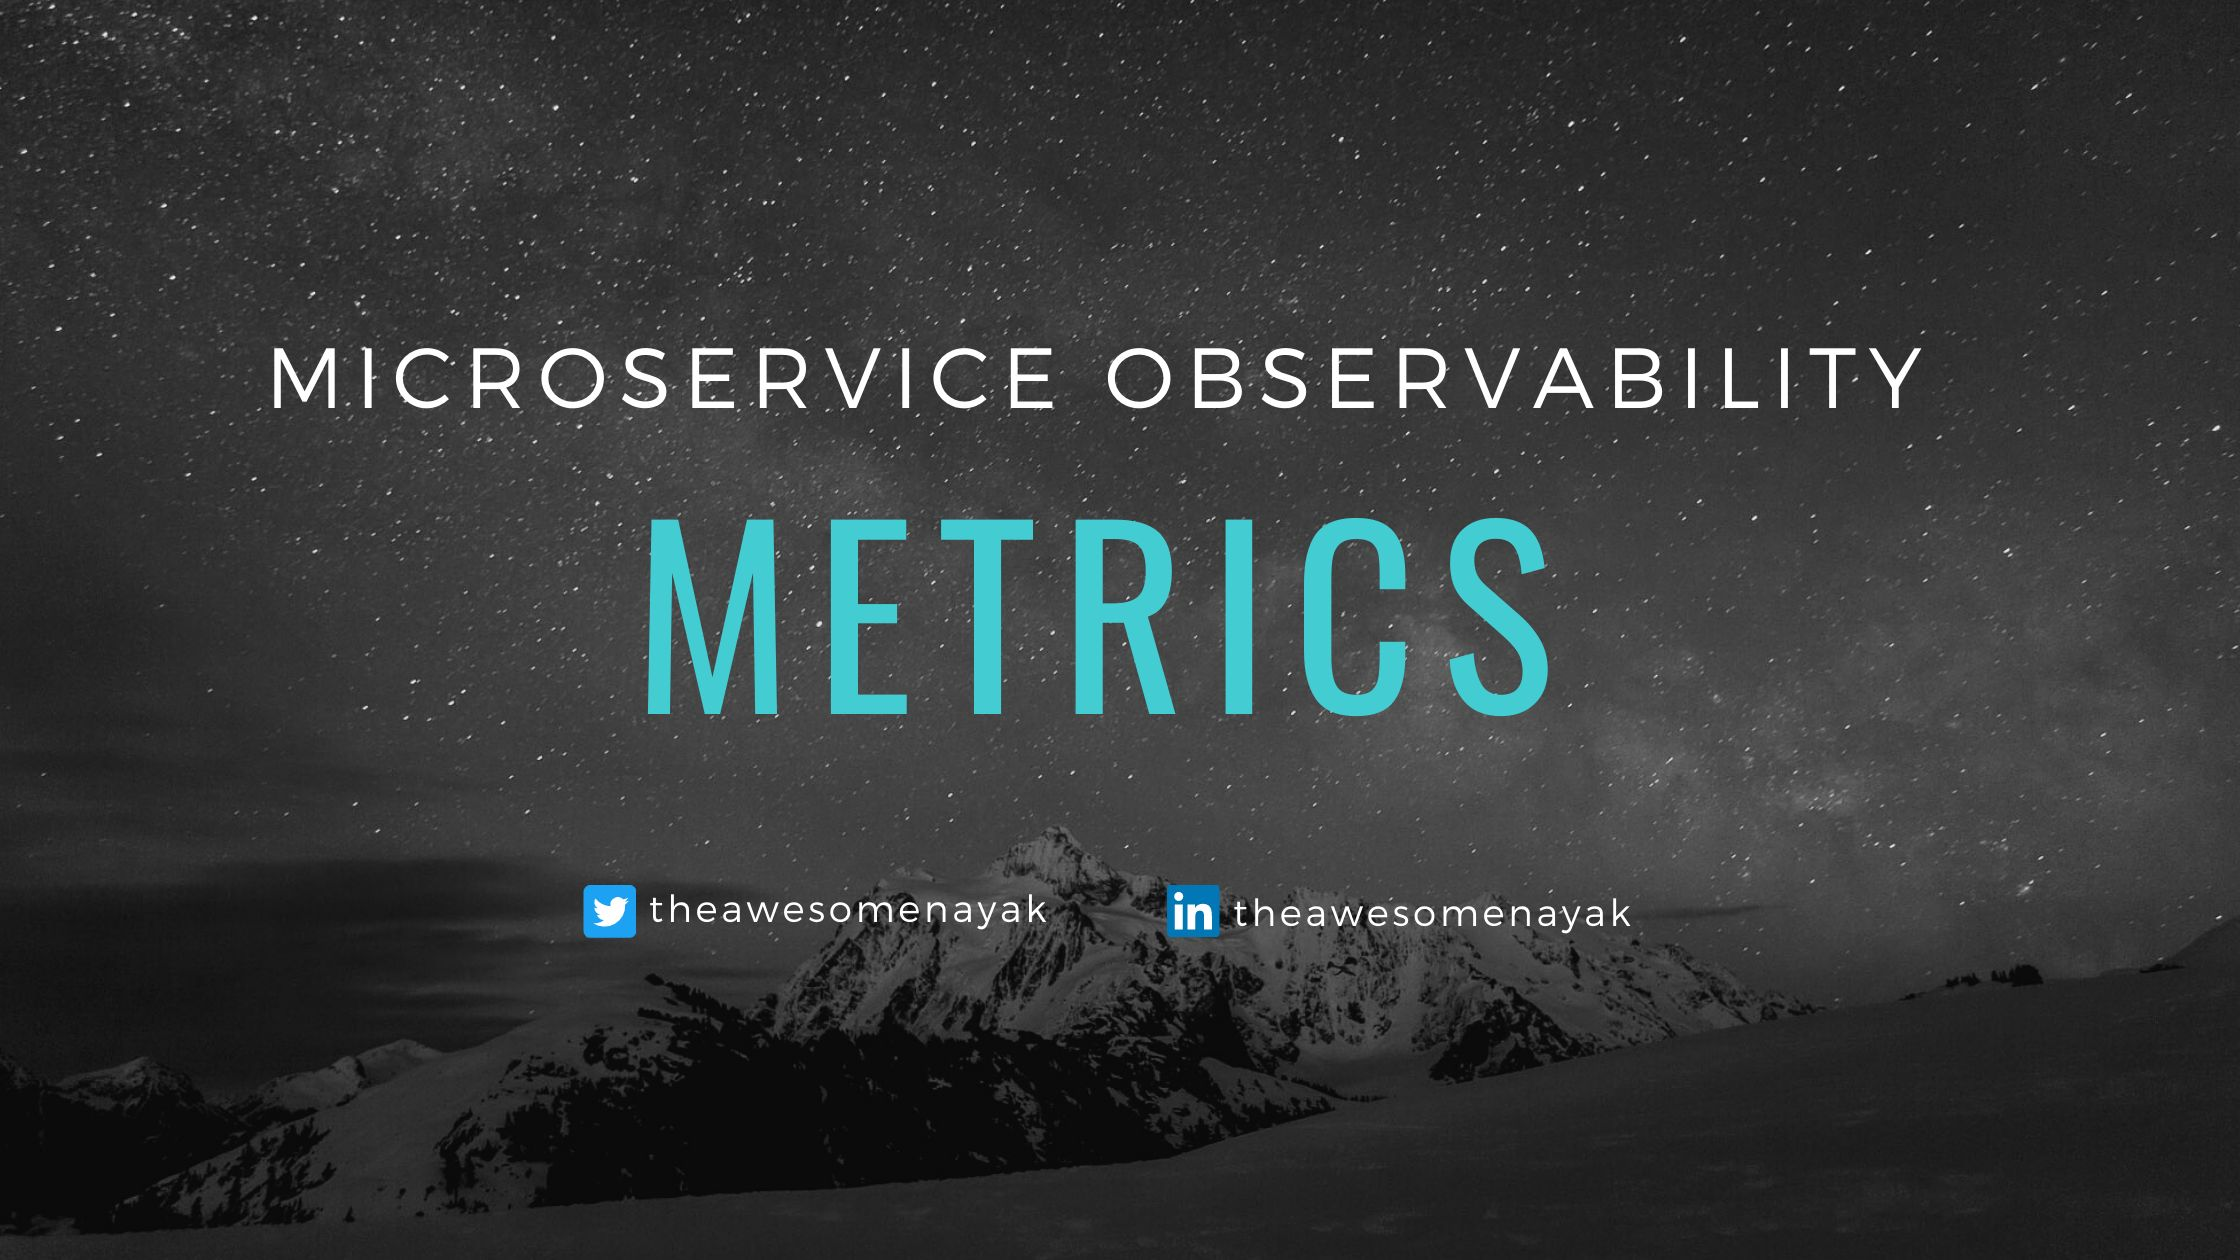 /microservice-observability-patterns-part-2-gvi3w9h feature image